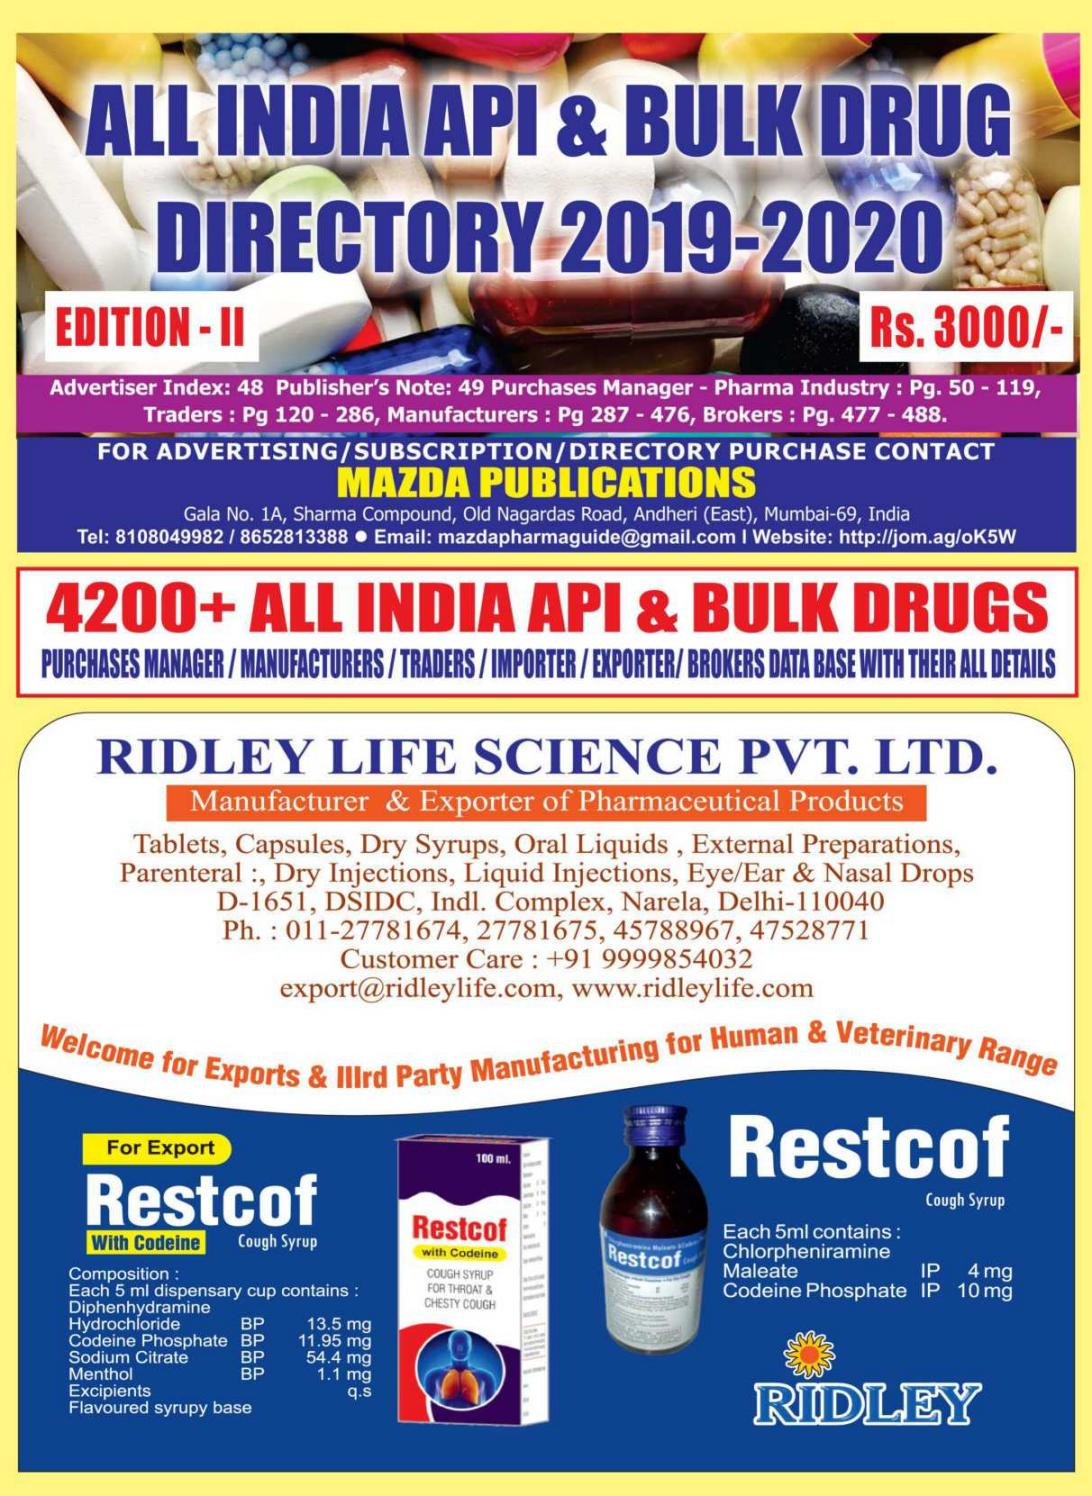 All India API & Bulk Drugs Directory 2019 - 20 by The Mazada